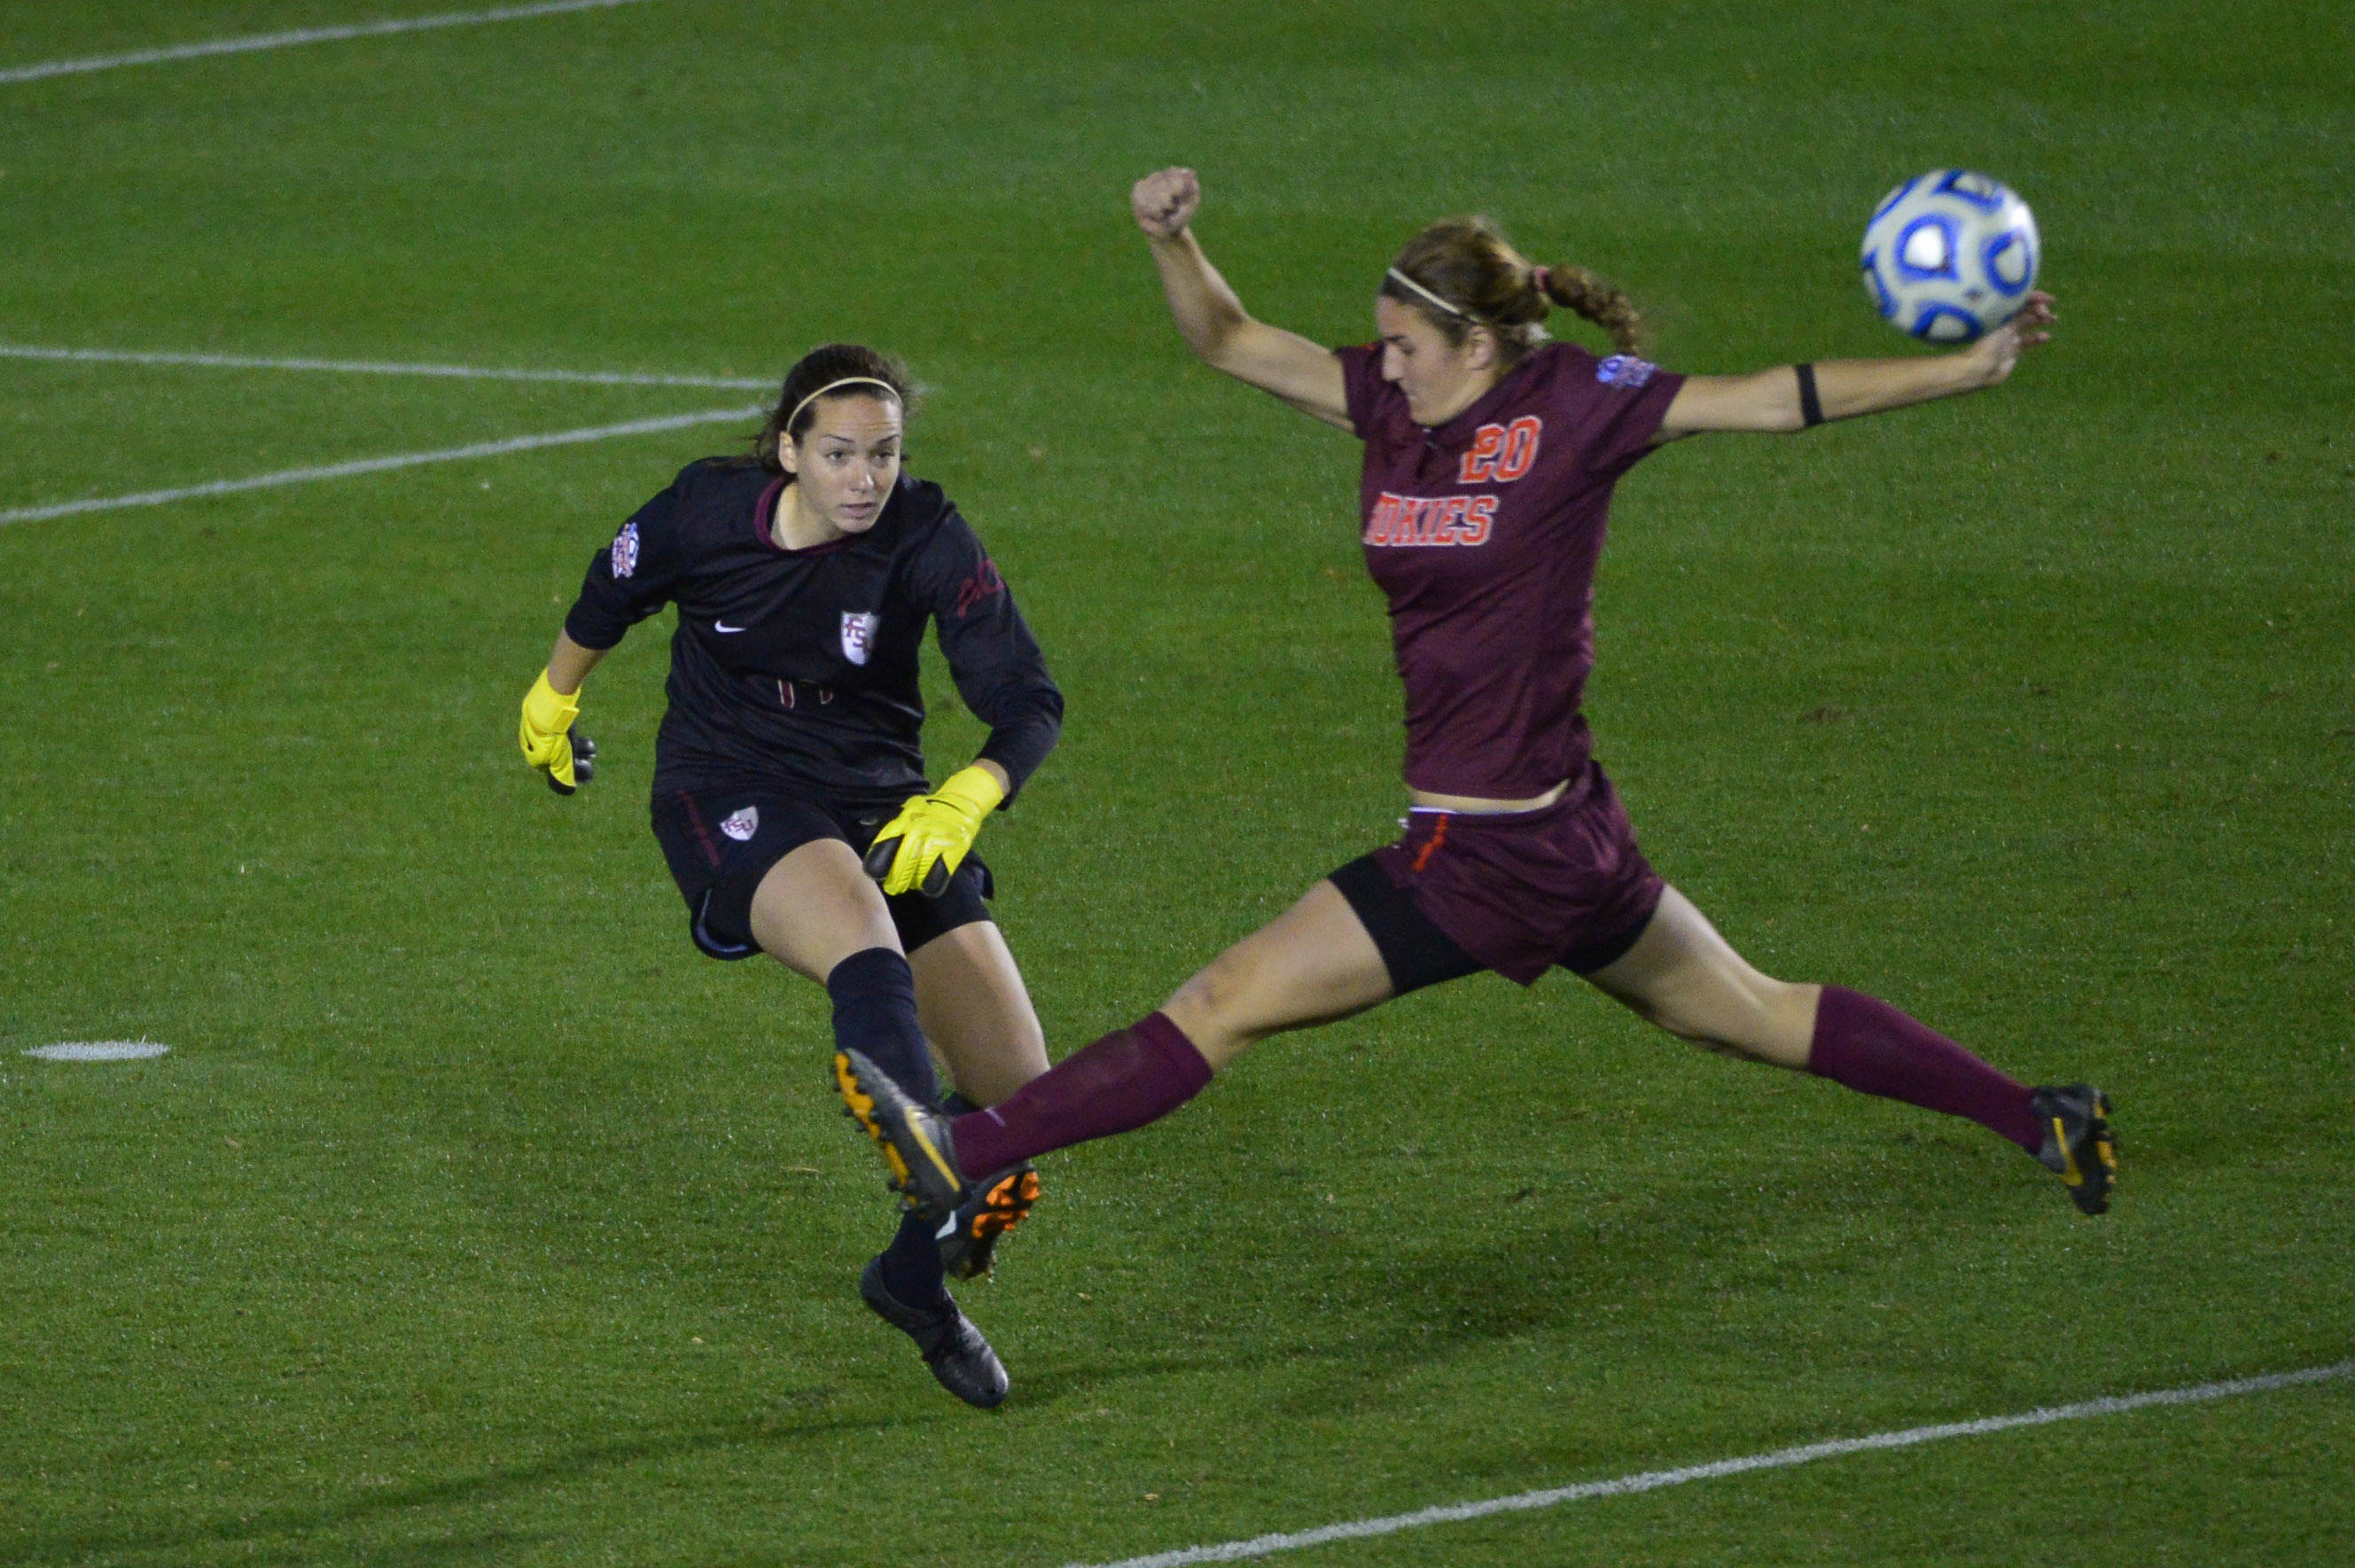 Dec 6, 2013; Cary, NC, USA; Florida State Seminoles goalkeeper Kelsey Wys (19) clears the ball as Virginia Tech Hokies forward Murielle Tiernan (20) tries to block in the second half. The Seminoles defeated the Hokies 3-2 at WakeMed Soccer Park. Mandatory Credit: Bob Donnan-USA TODAY Sports